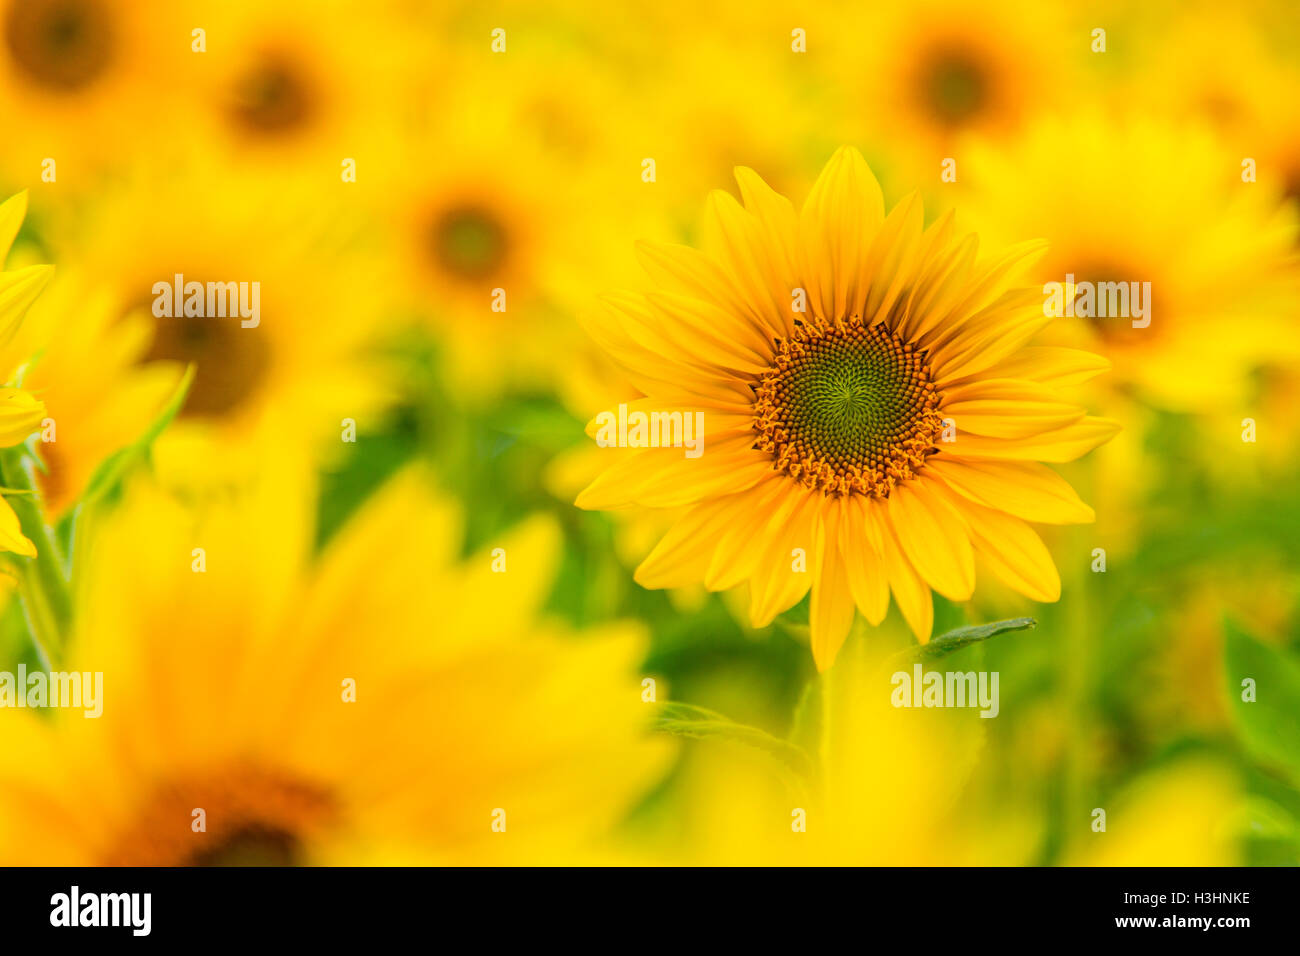 Field of sunflowers, many plants, yellow, - Stock Image